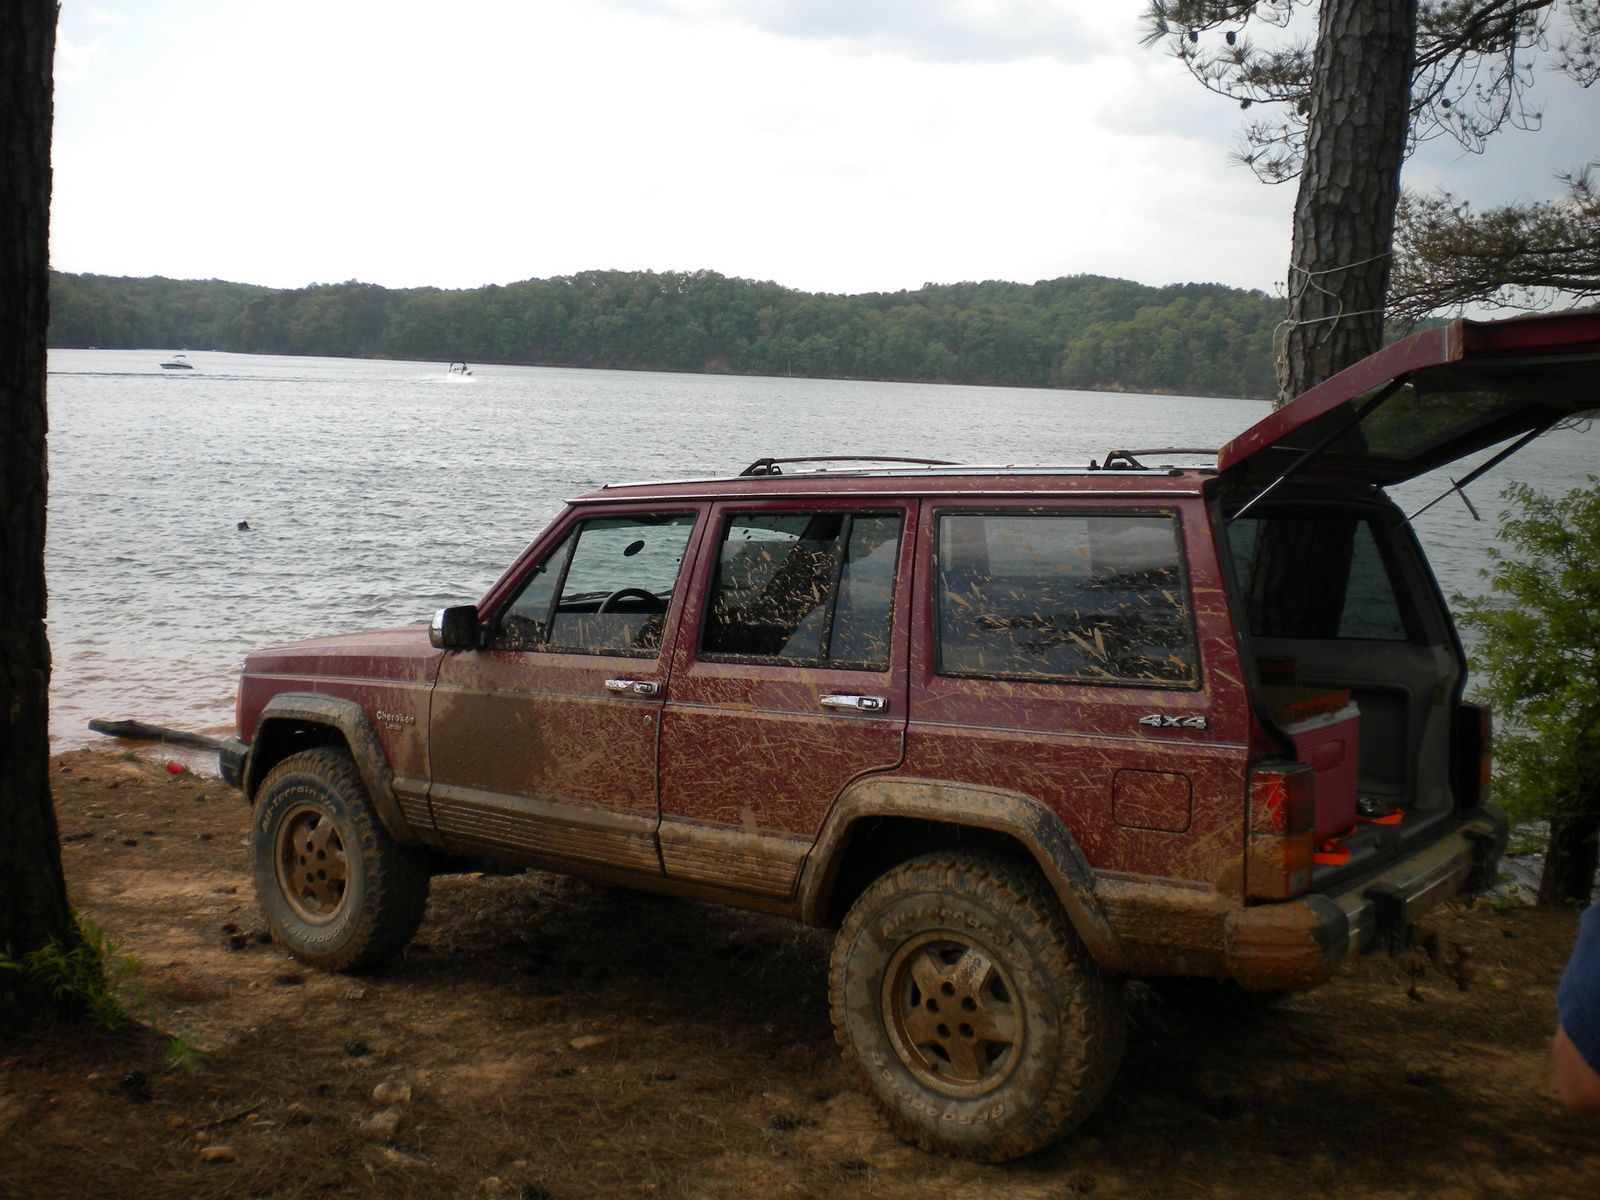 1989 Jeep Cherokee I Once Saw One In Traffic With A For